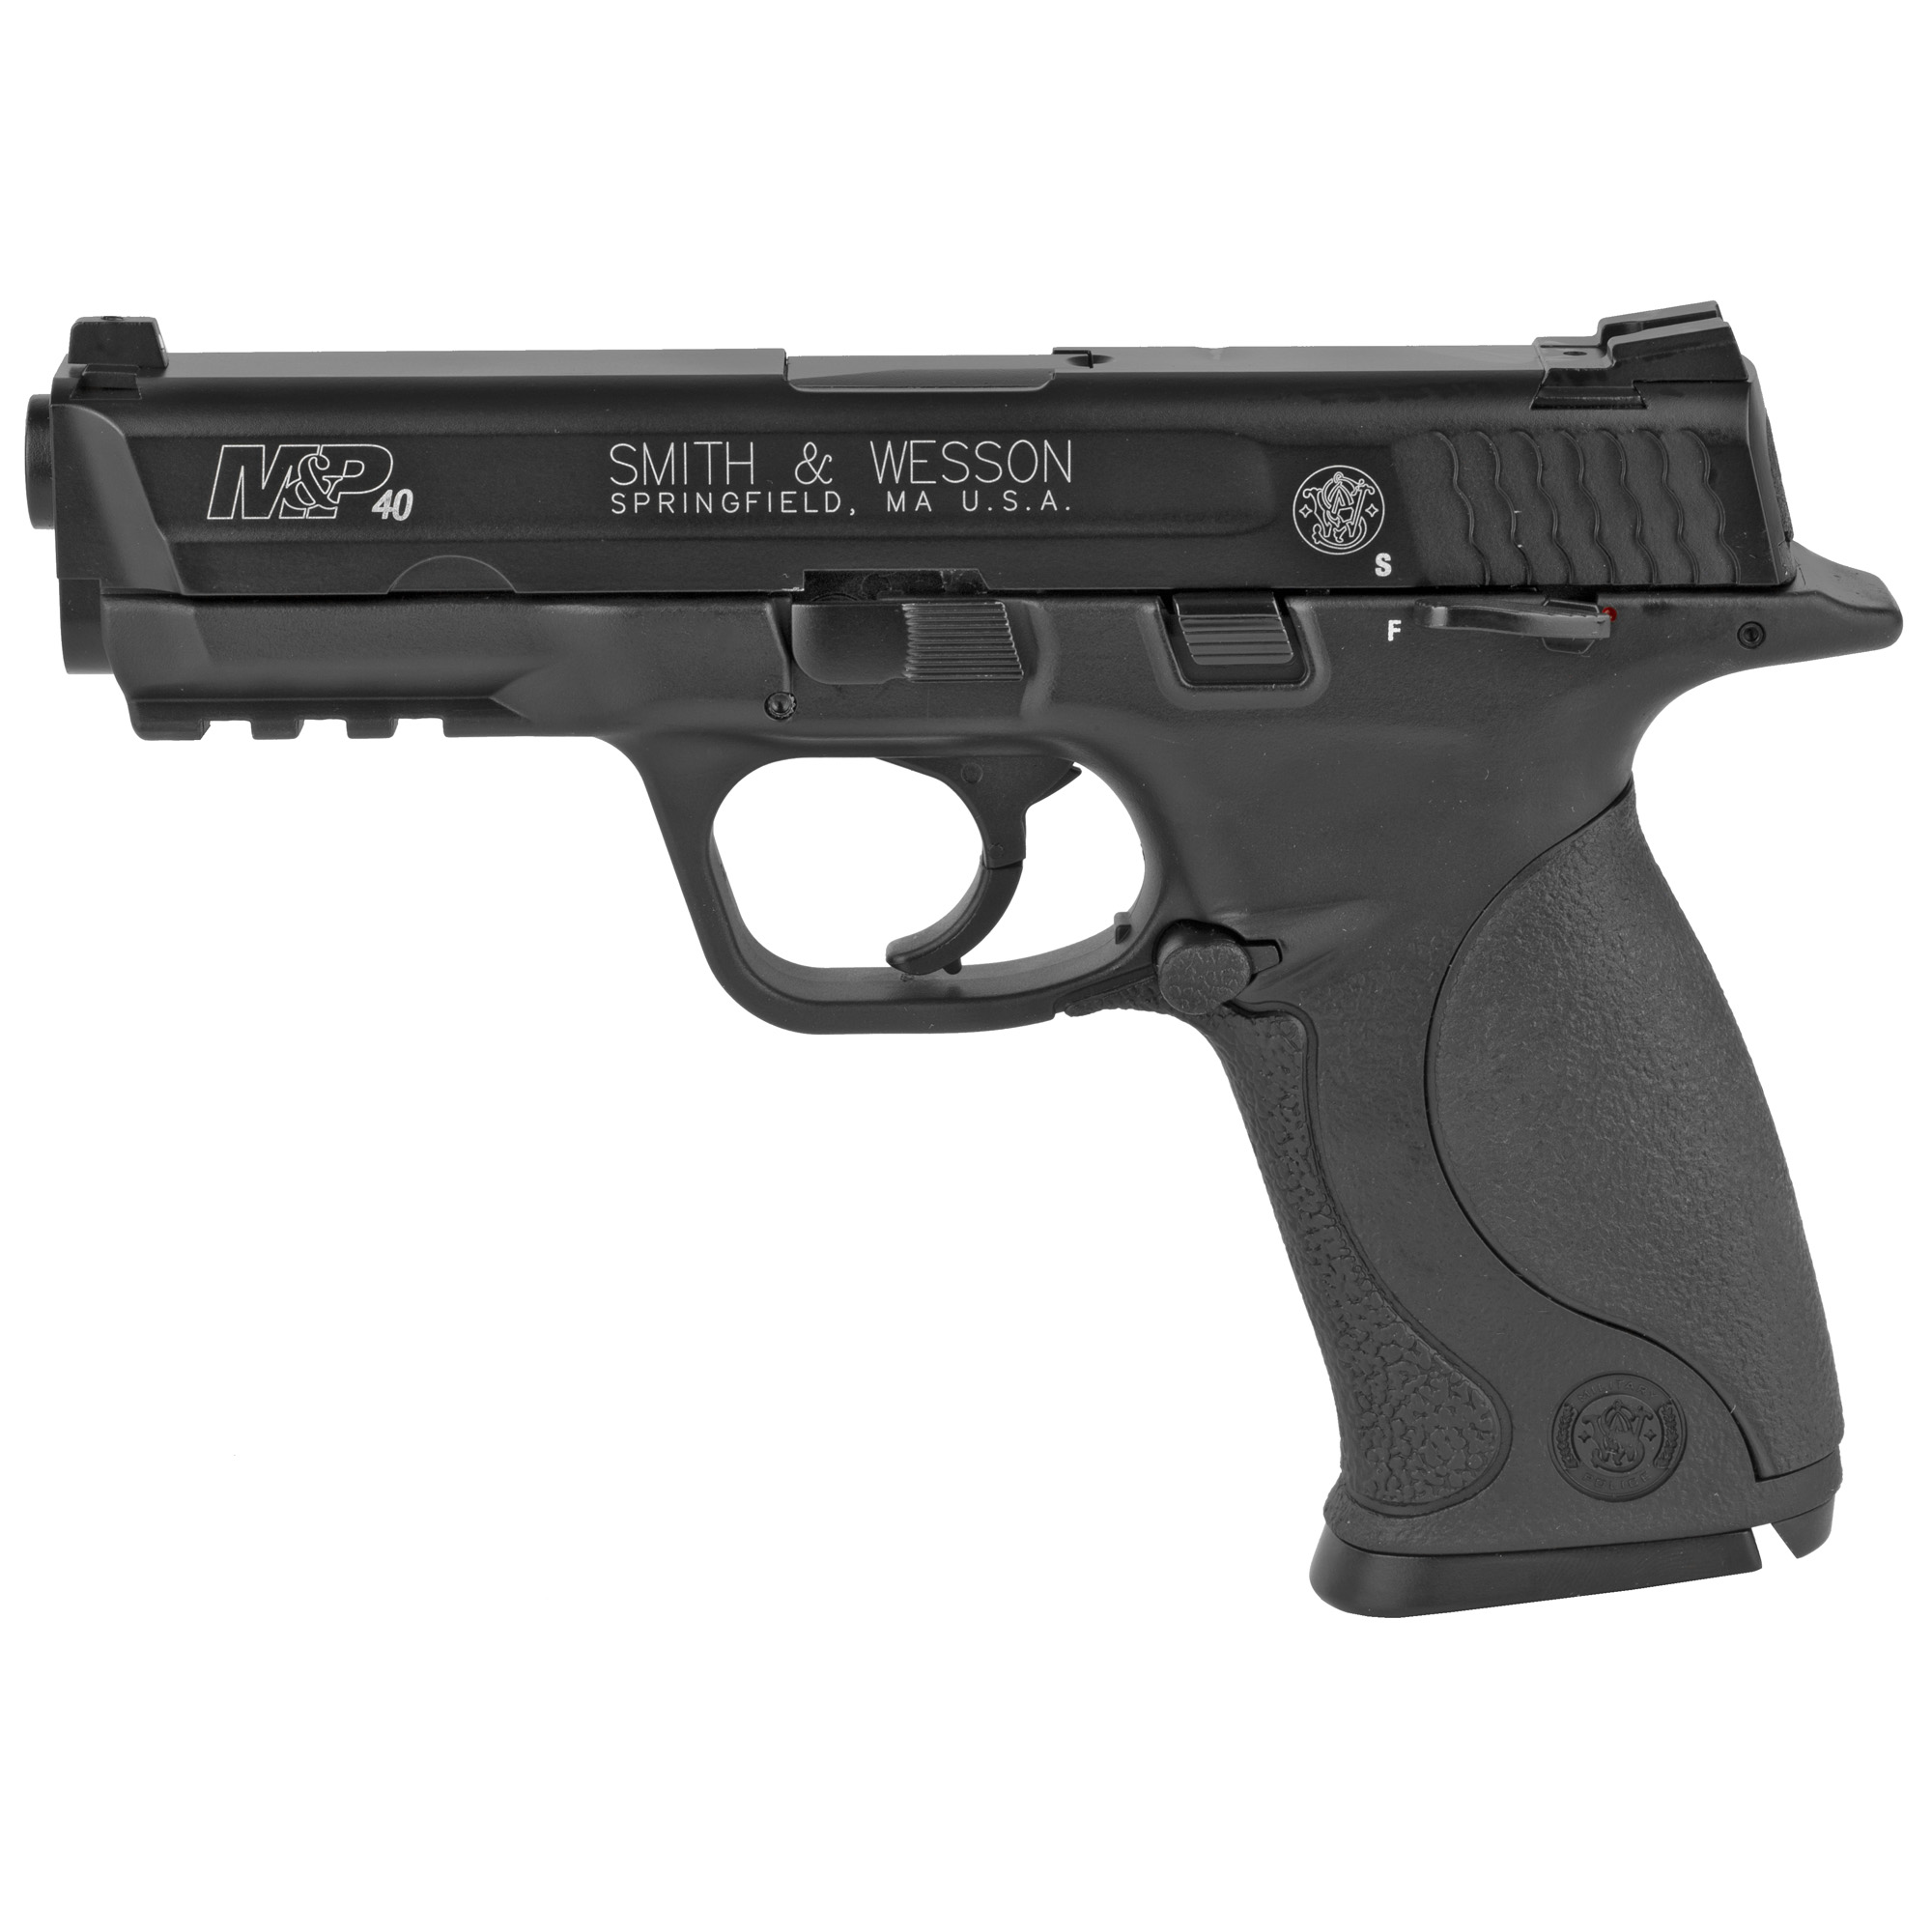 "Umx S&w M&p 177bb 4.25"" Blk Blowback"